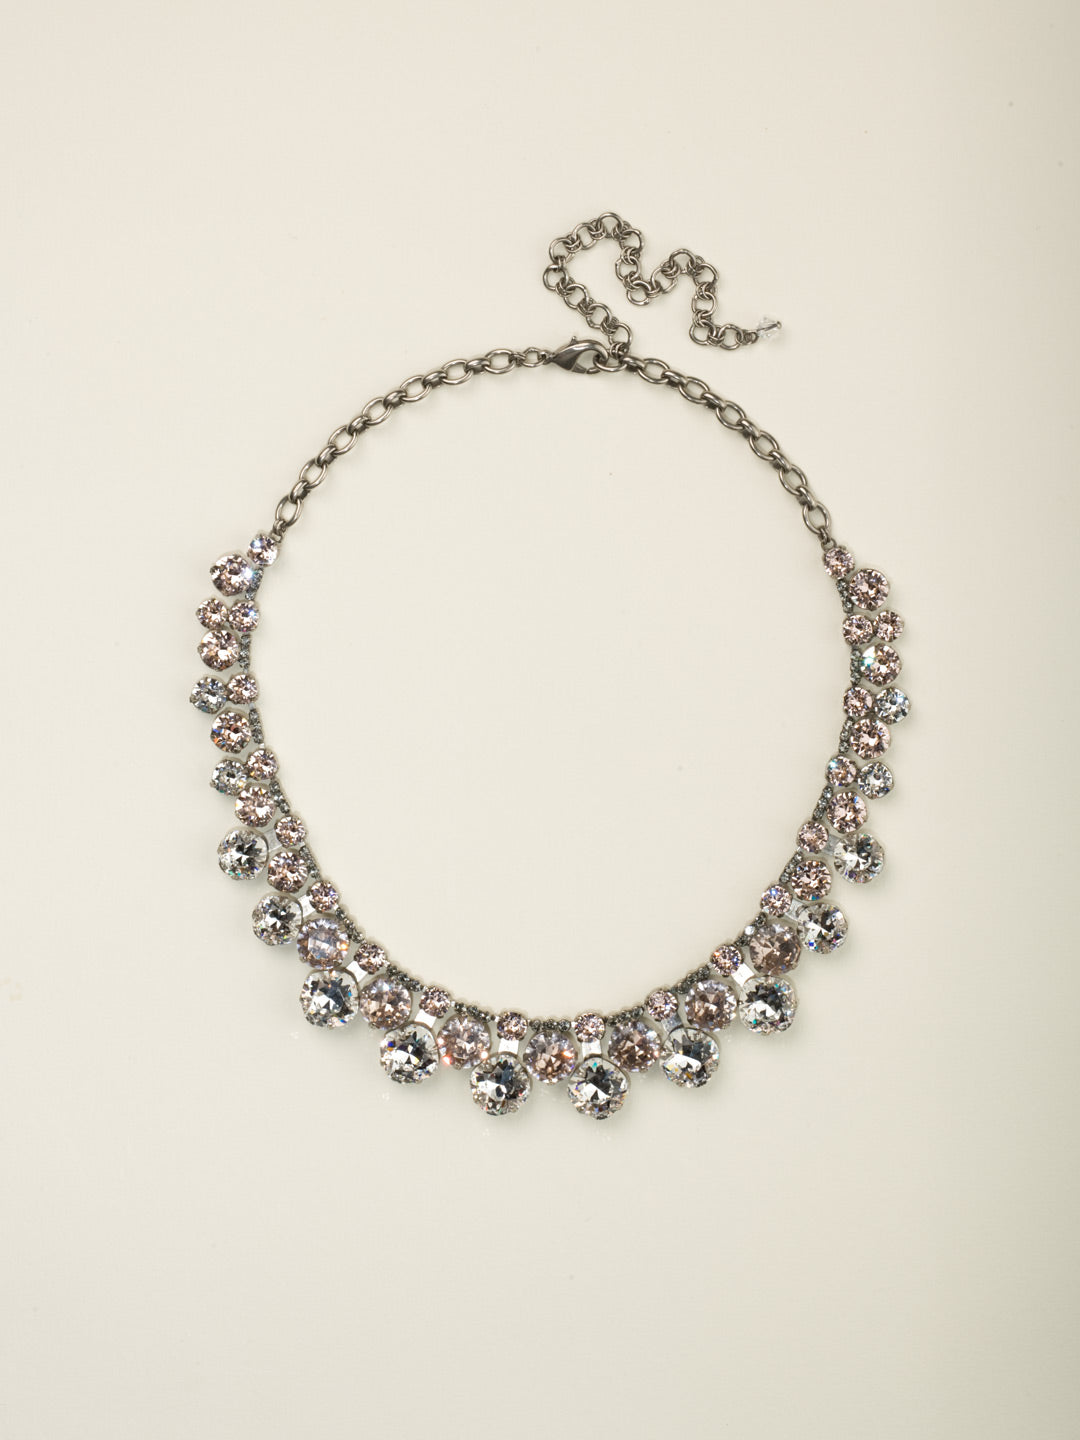 Cushion Cut Crystal Statement Collar Necklace - NCT14ASSNB